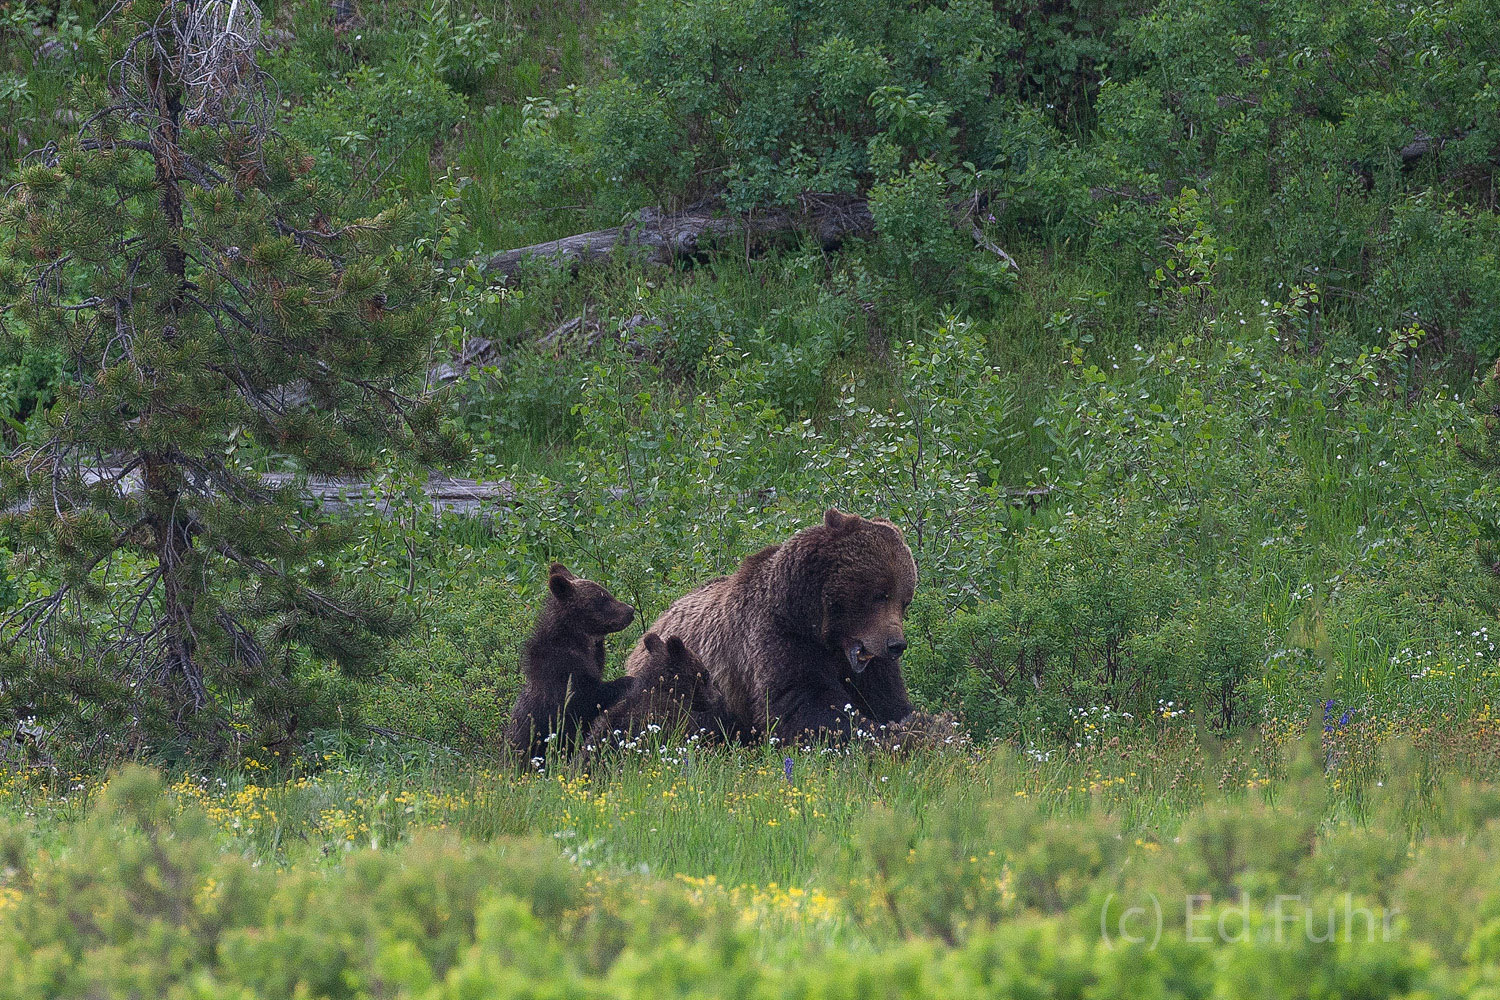 Grizzly moms, like 399, know the importance of administering swift and firm lessons to wayward cubs.